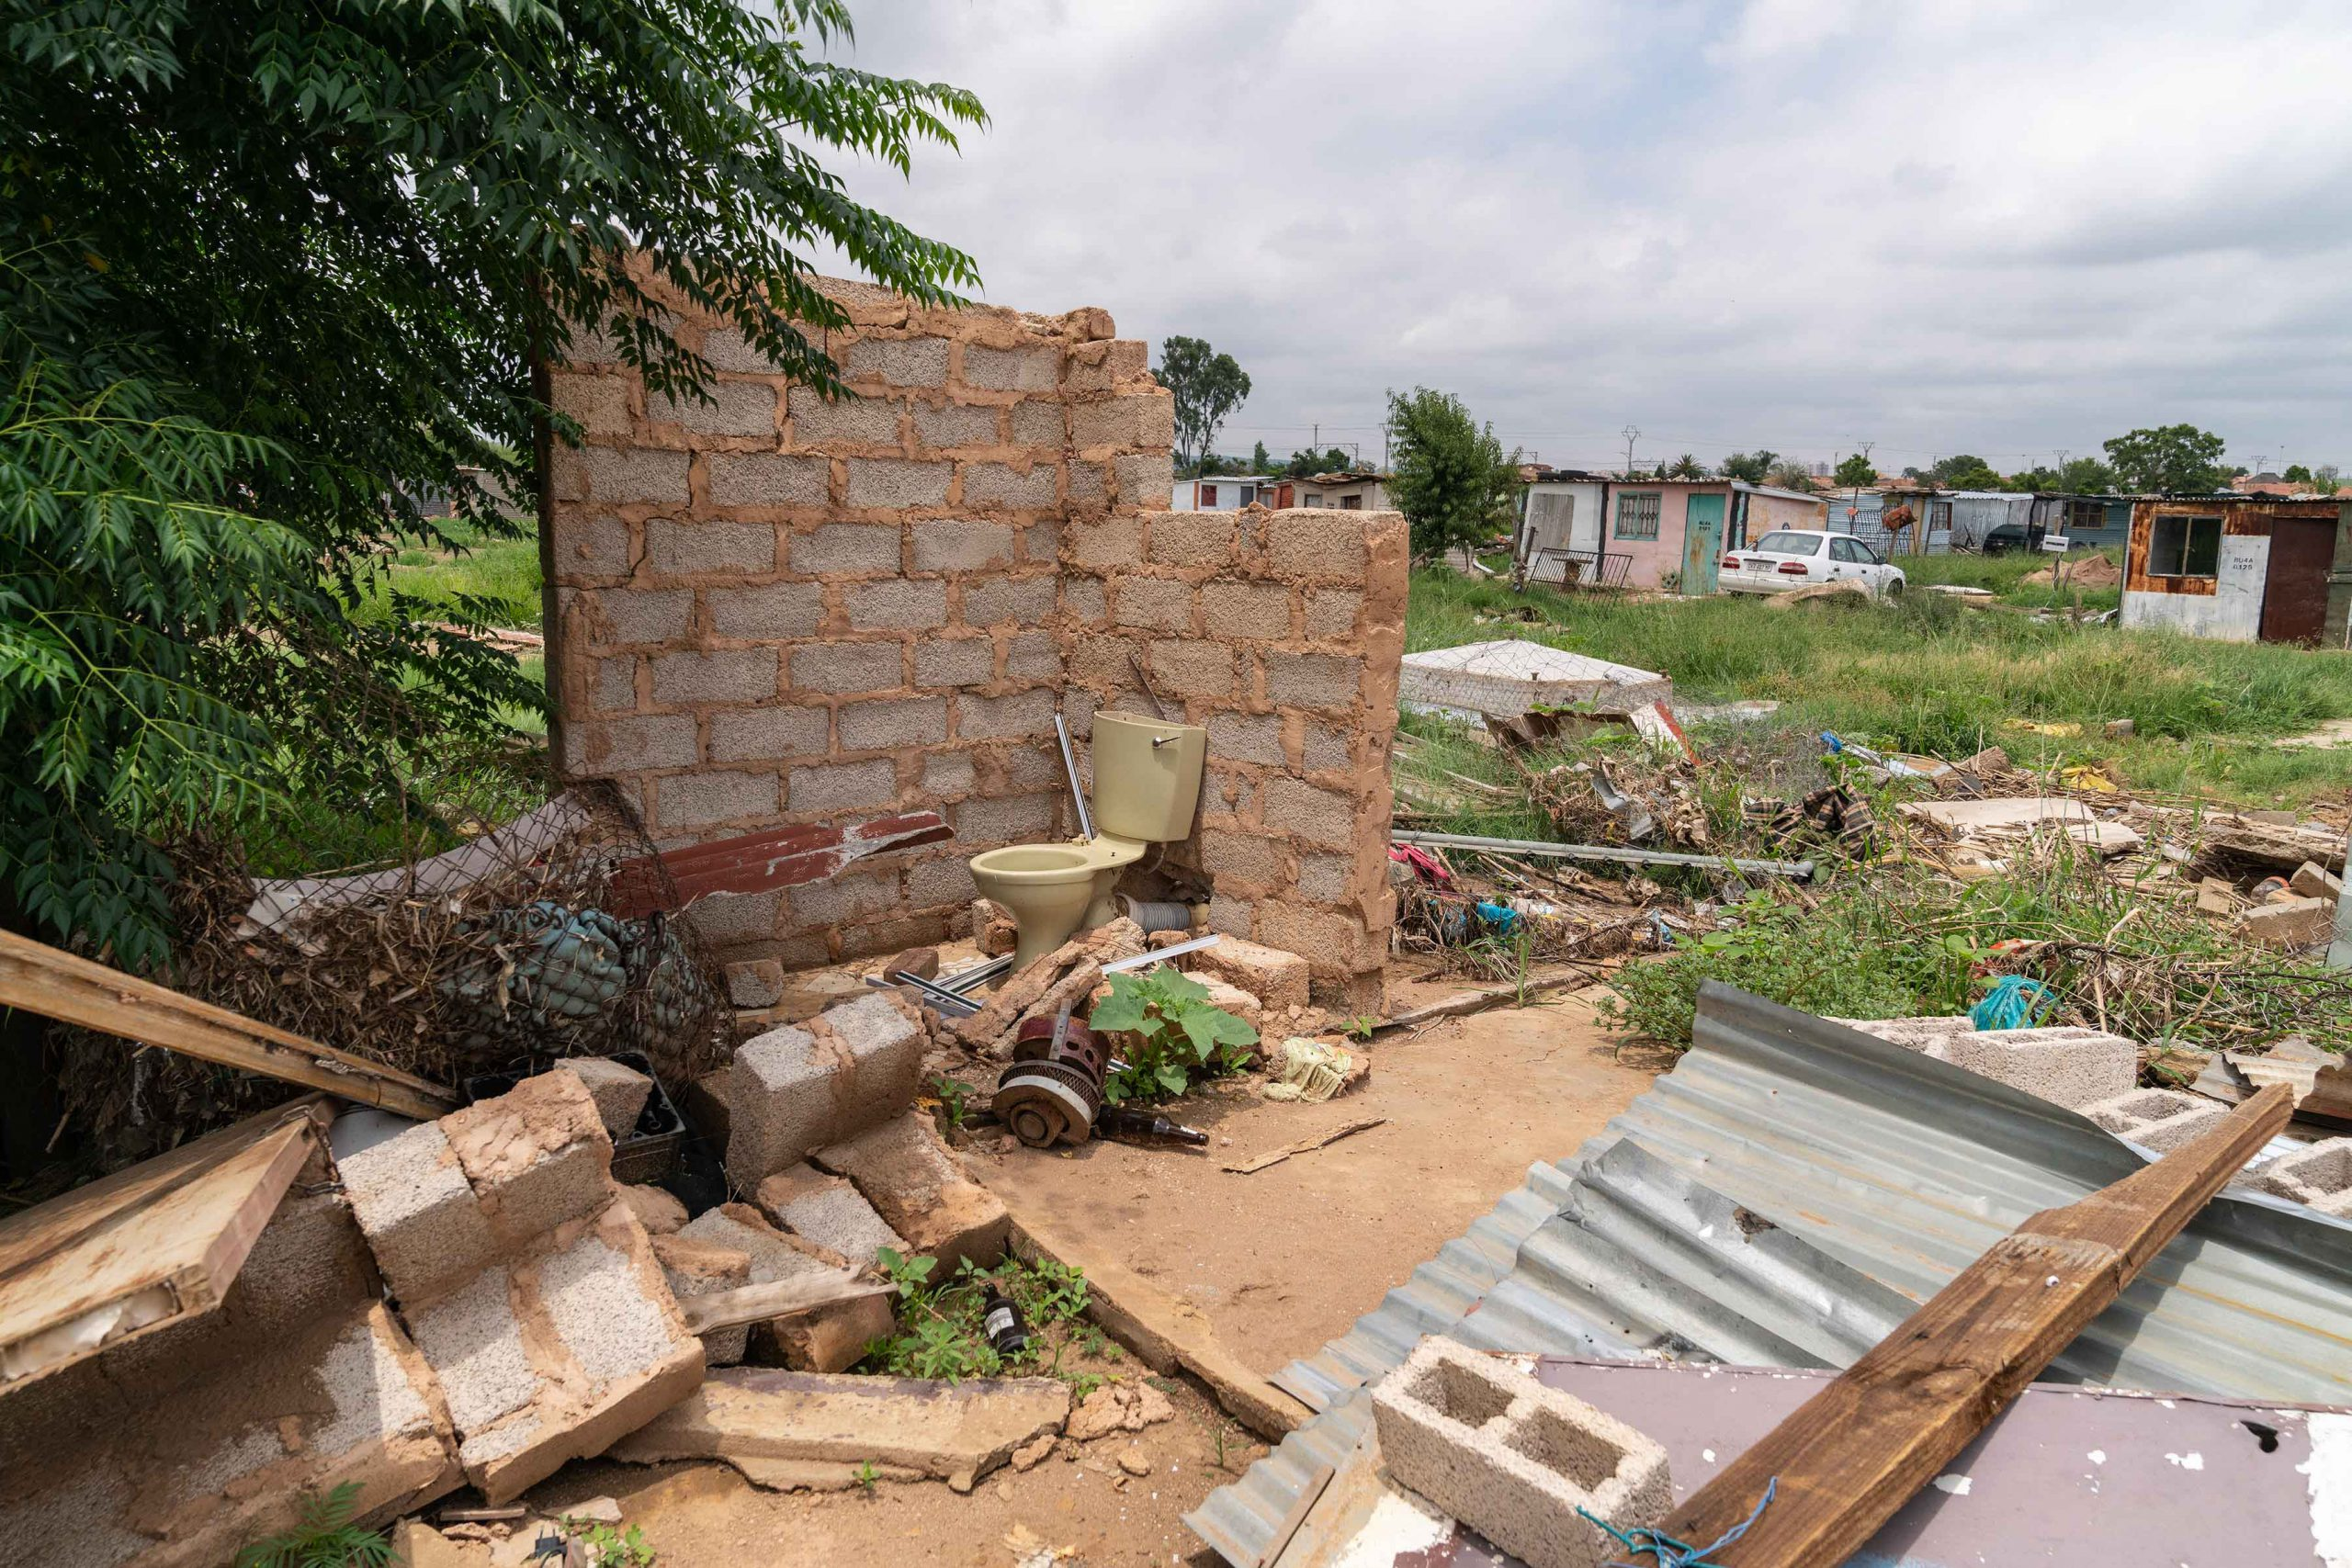 21 January 2020: A toilet and cistern are all that remain of this home at the Seven Seven shack settlement in Mamelodi.